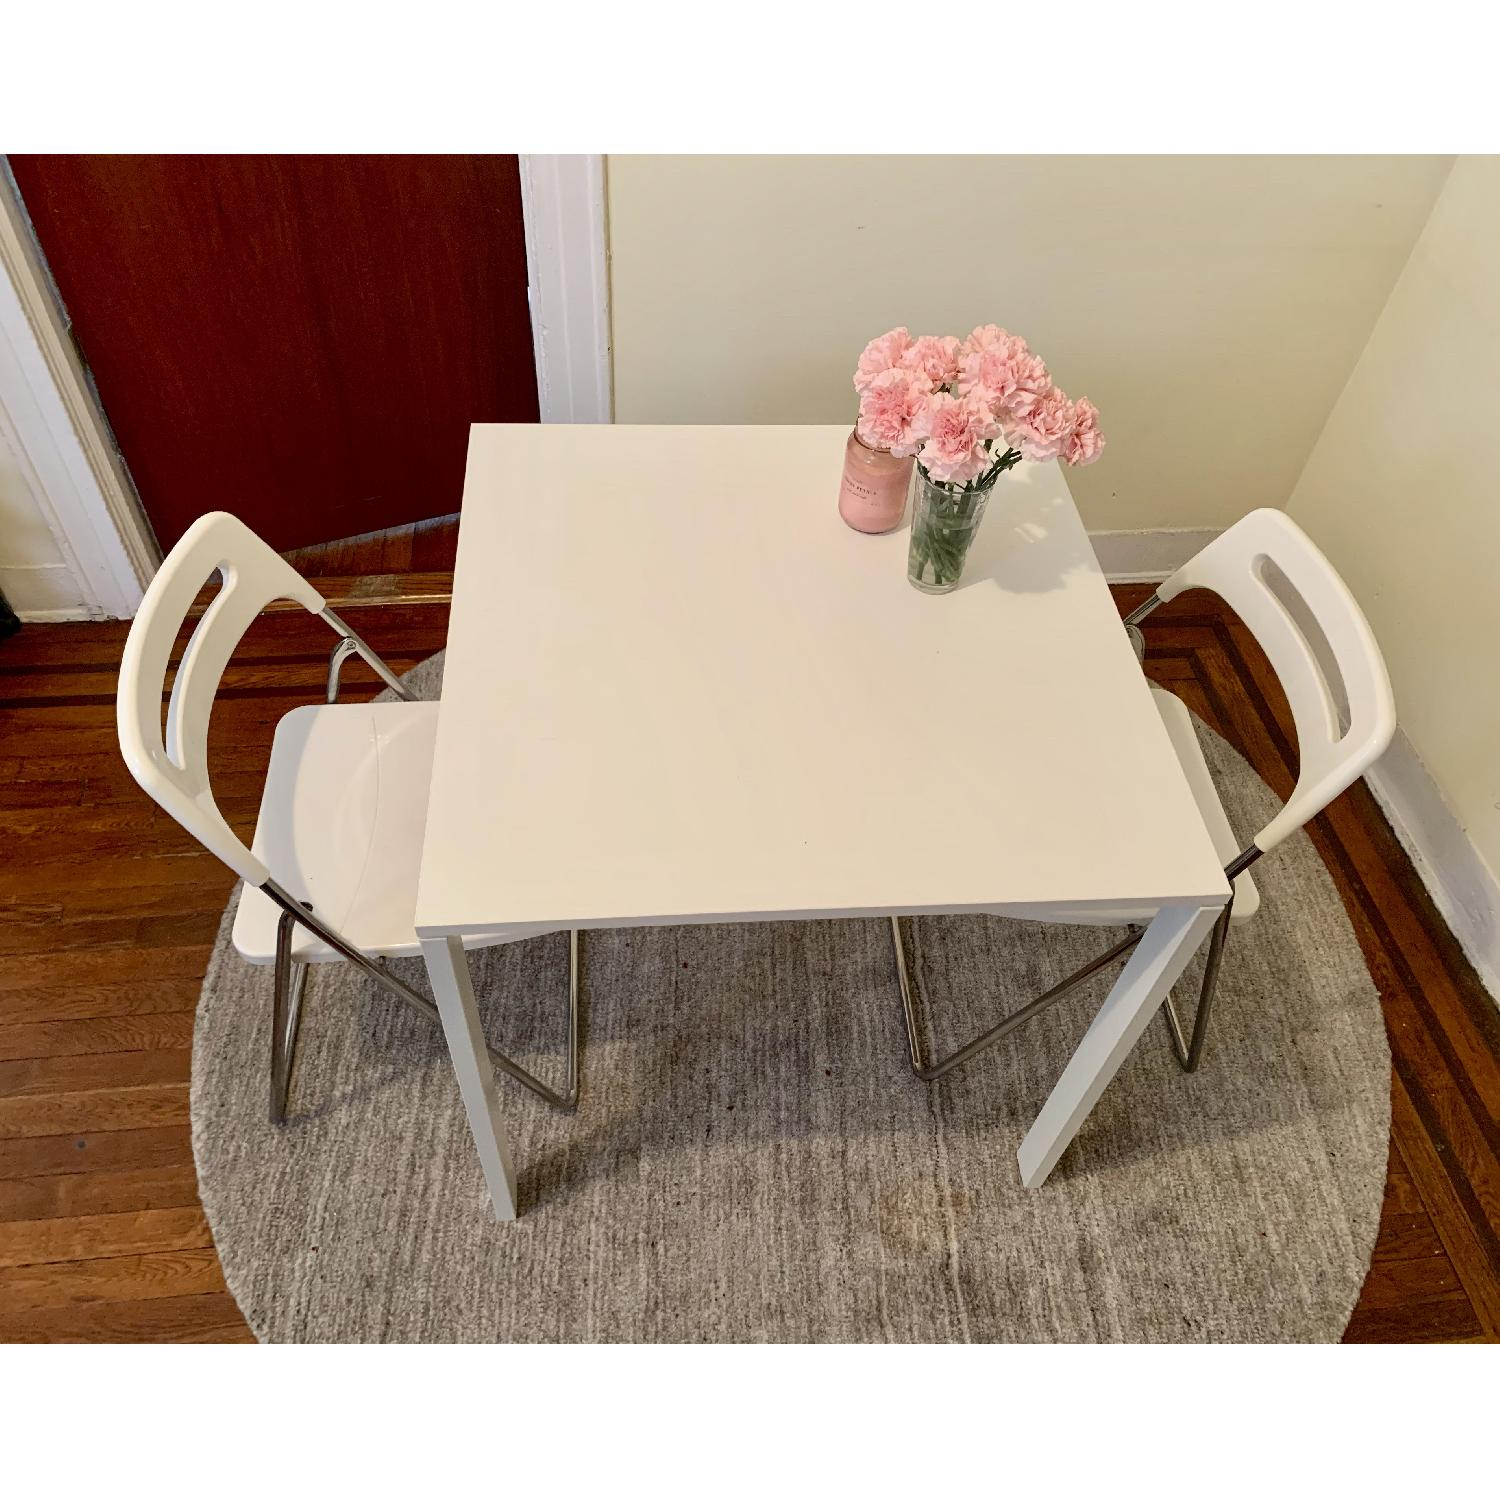 Ikea Square White Dining Table - image-1